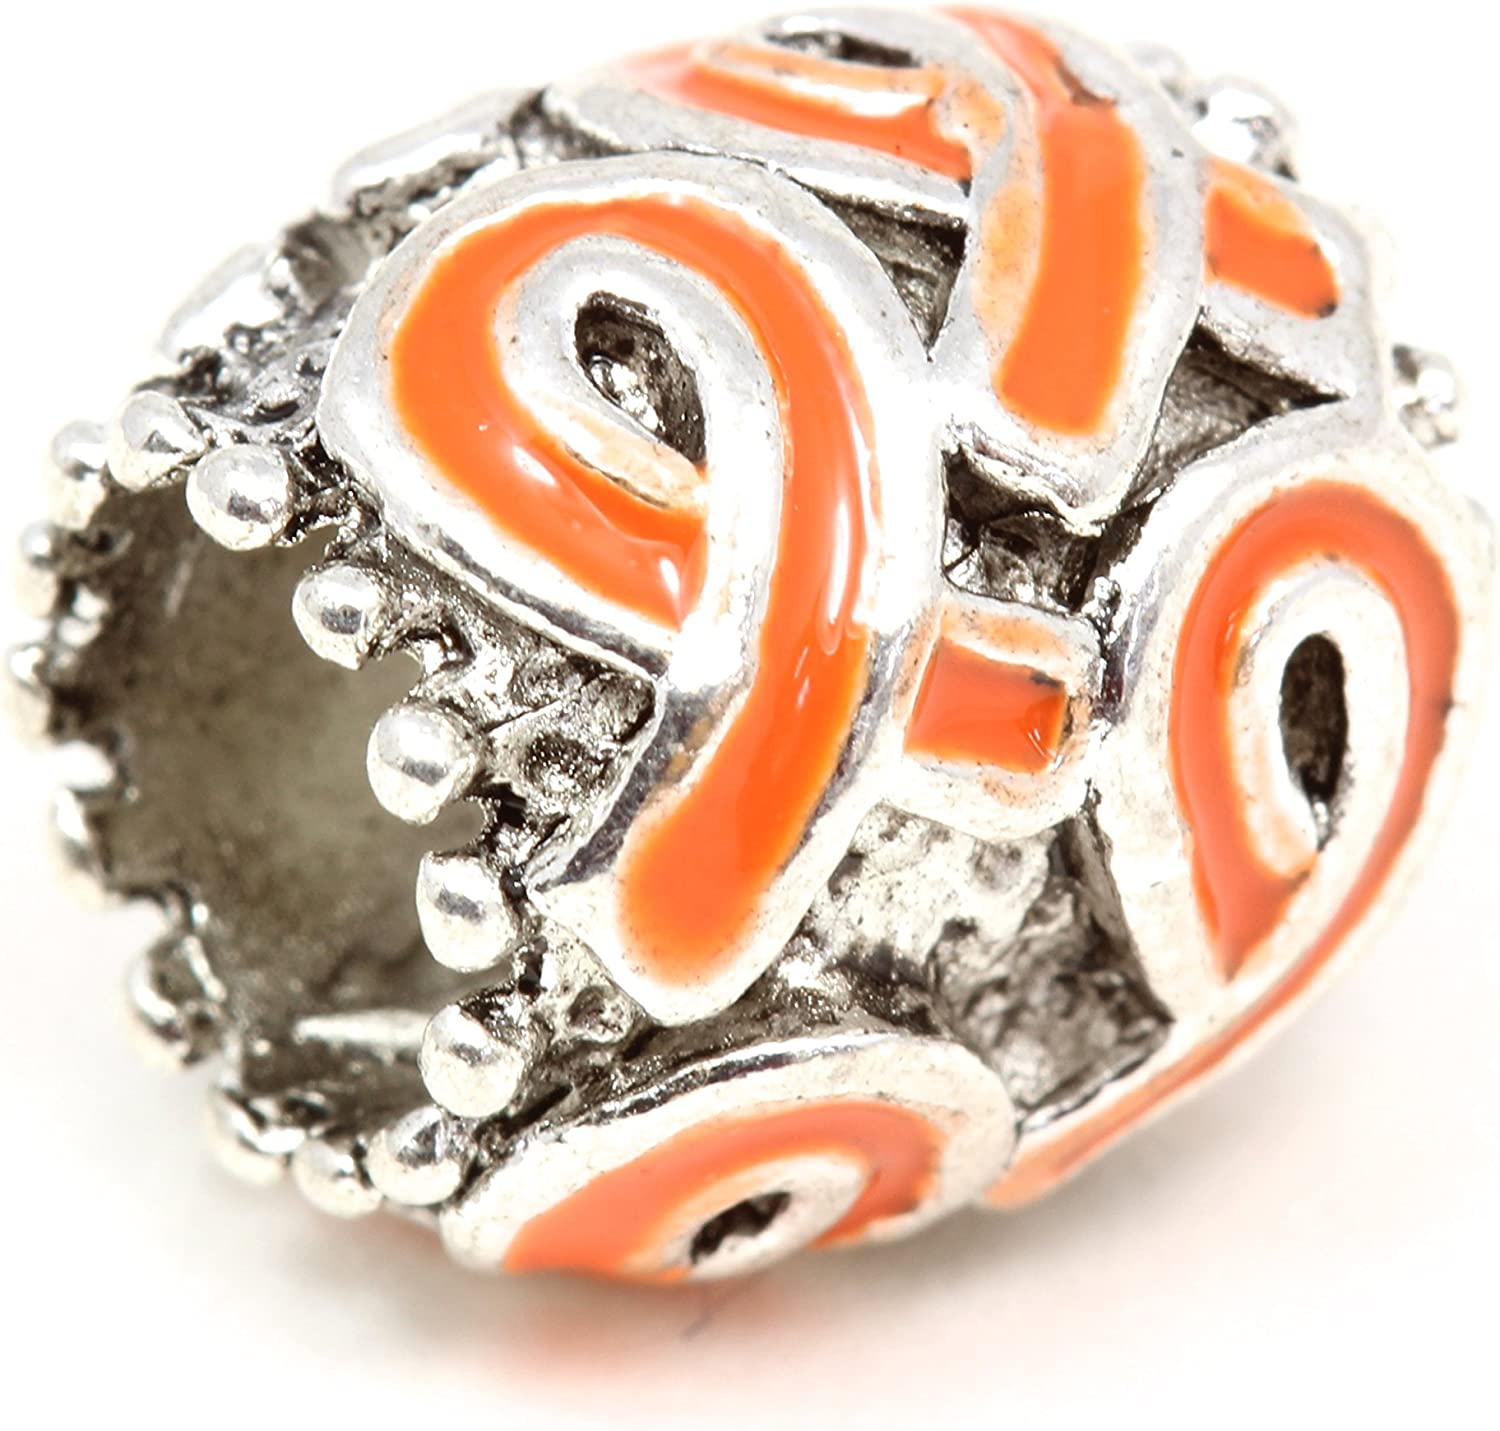 Awareness Products Warehouse Orange Multi Ribbon Bracelet Charm Buy 1 Give 1-2 Charms for only $9.99